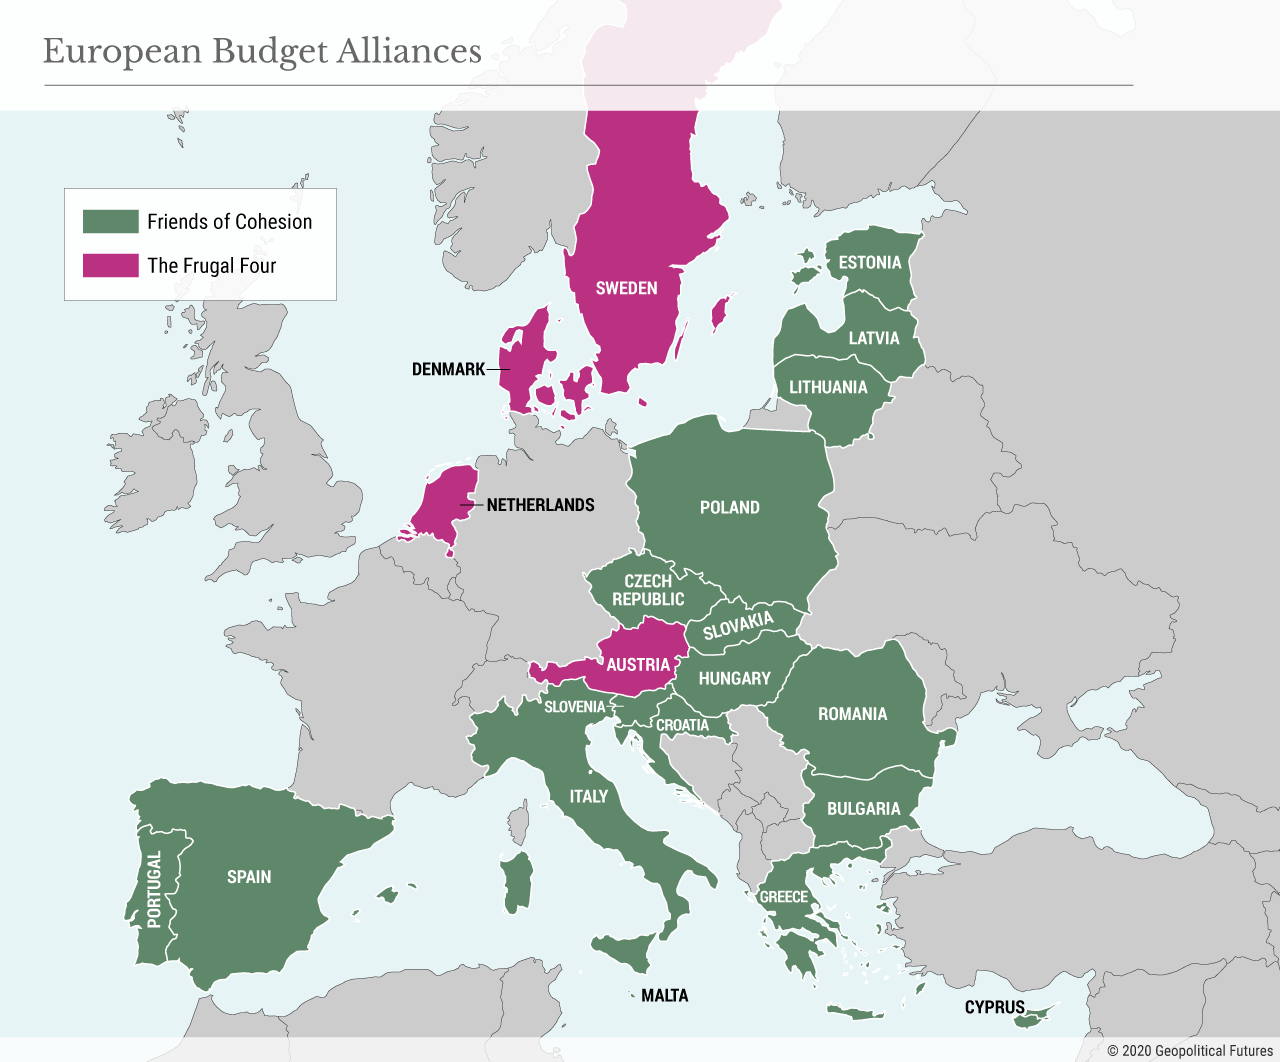 European Budget Alliances